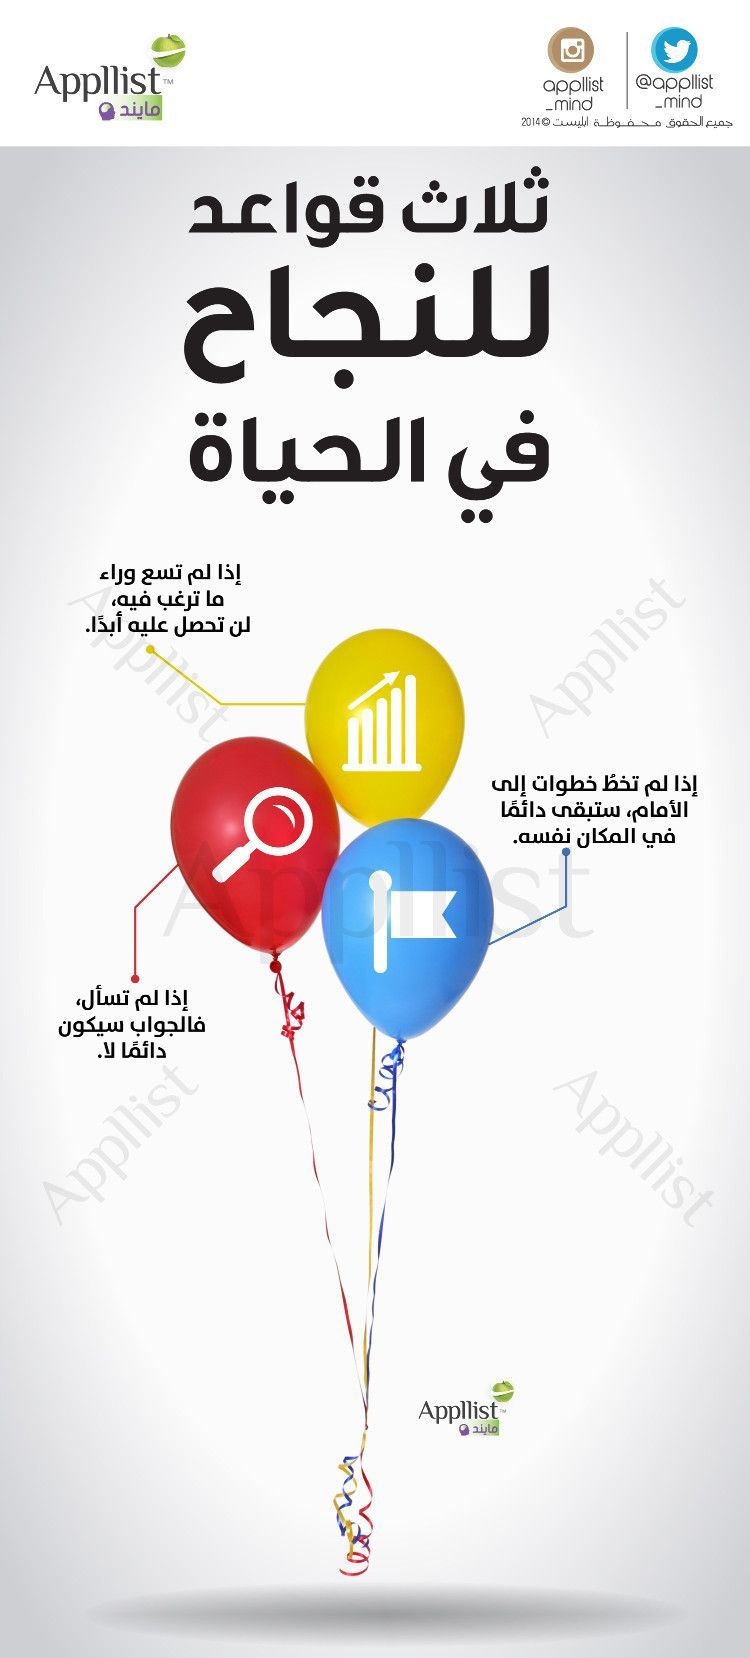 قواعد النجاح Learning Websites Self Development Books Intellegence